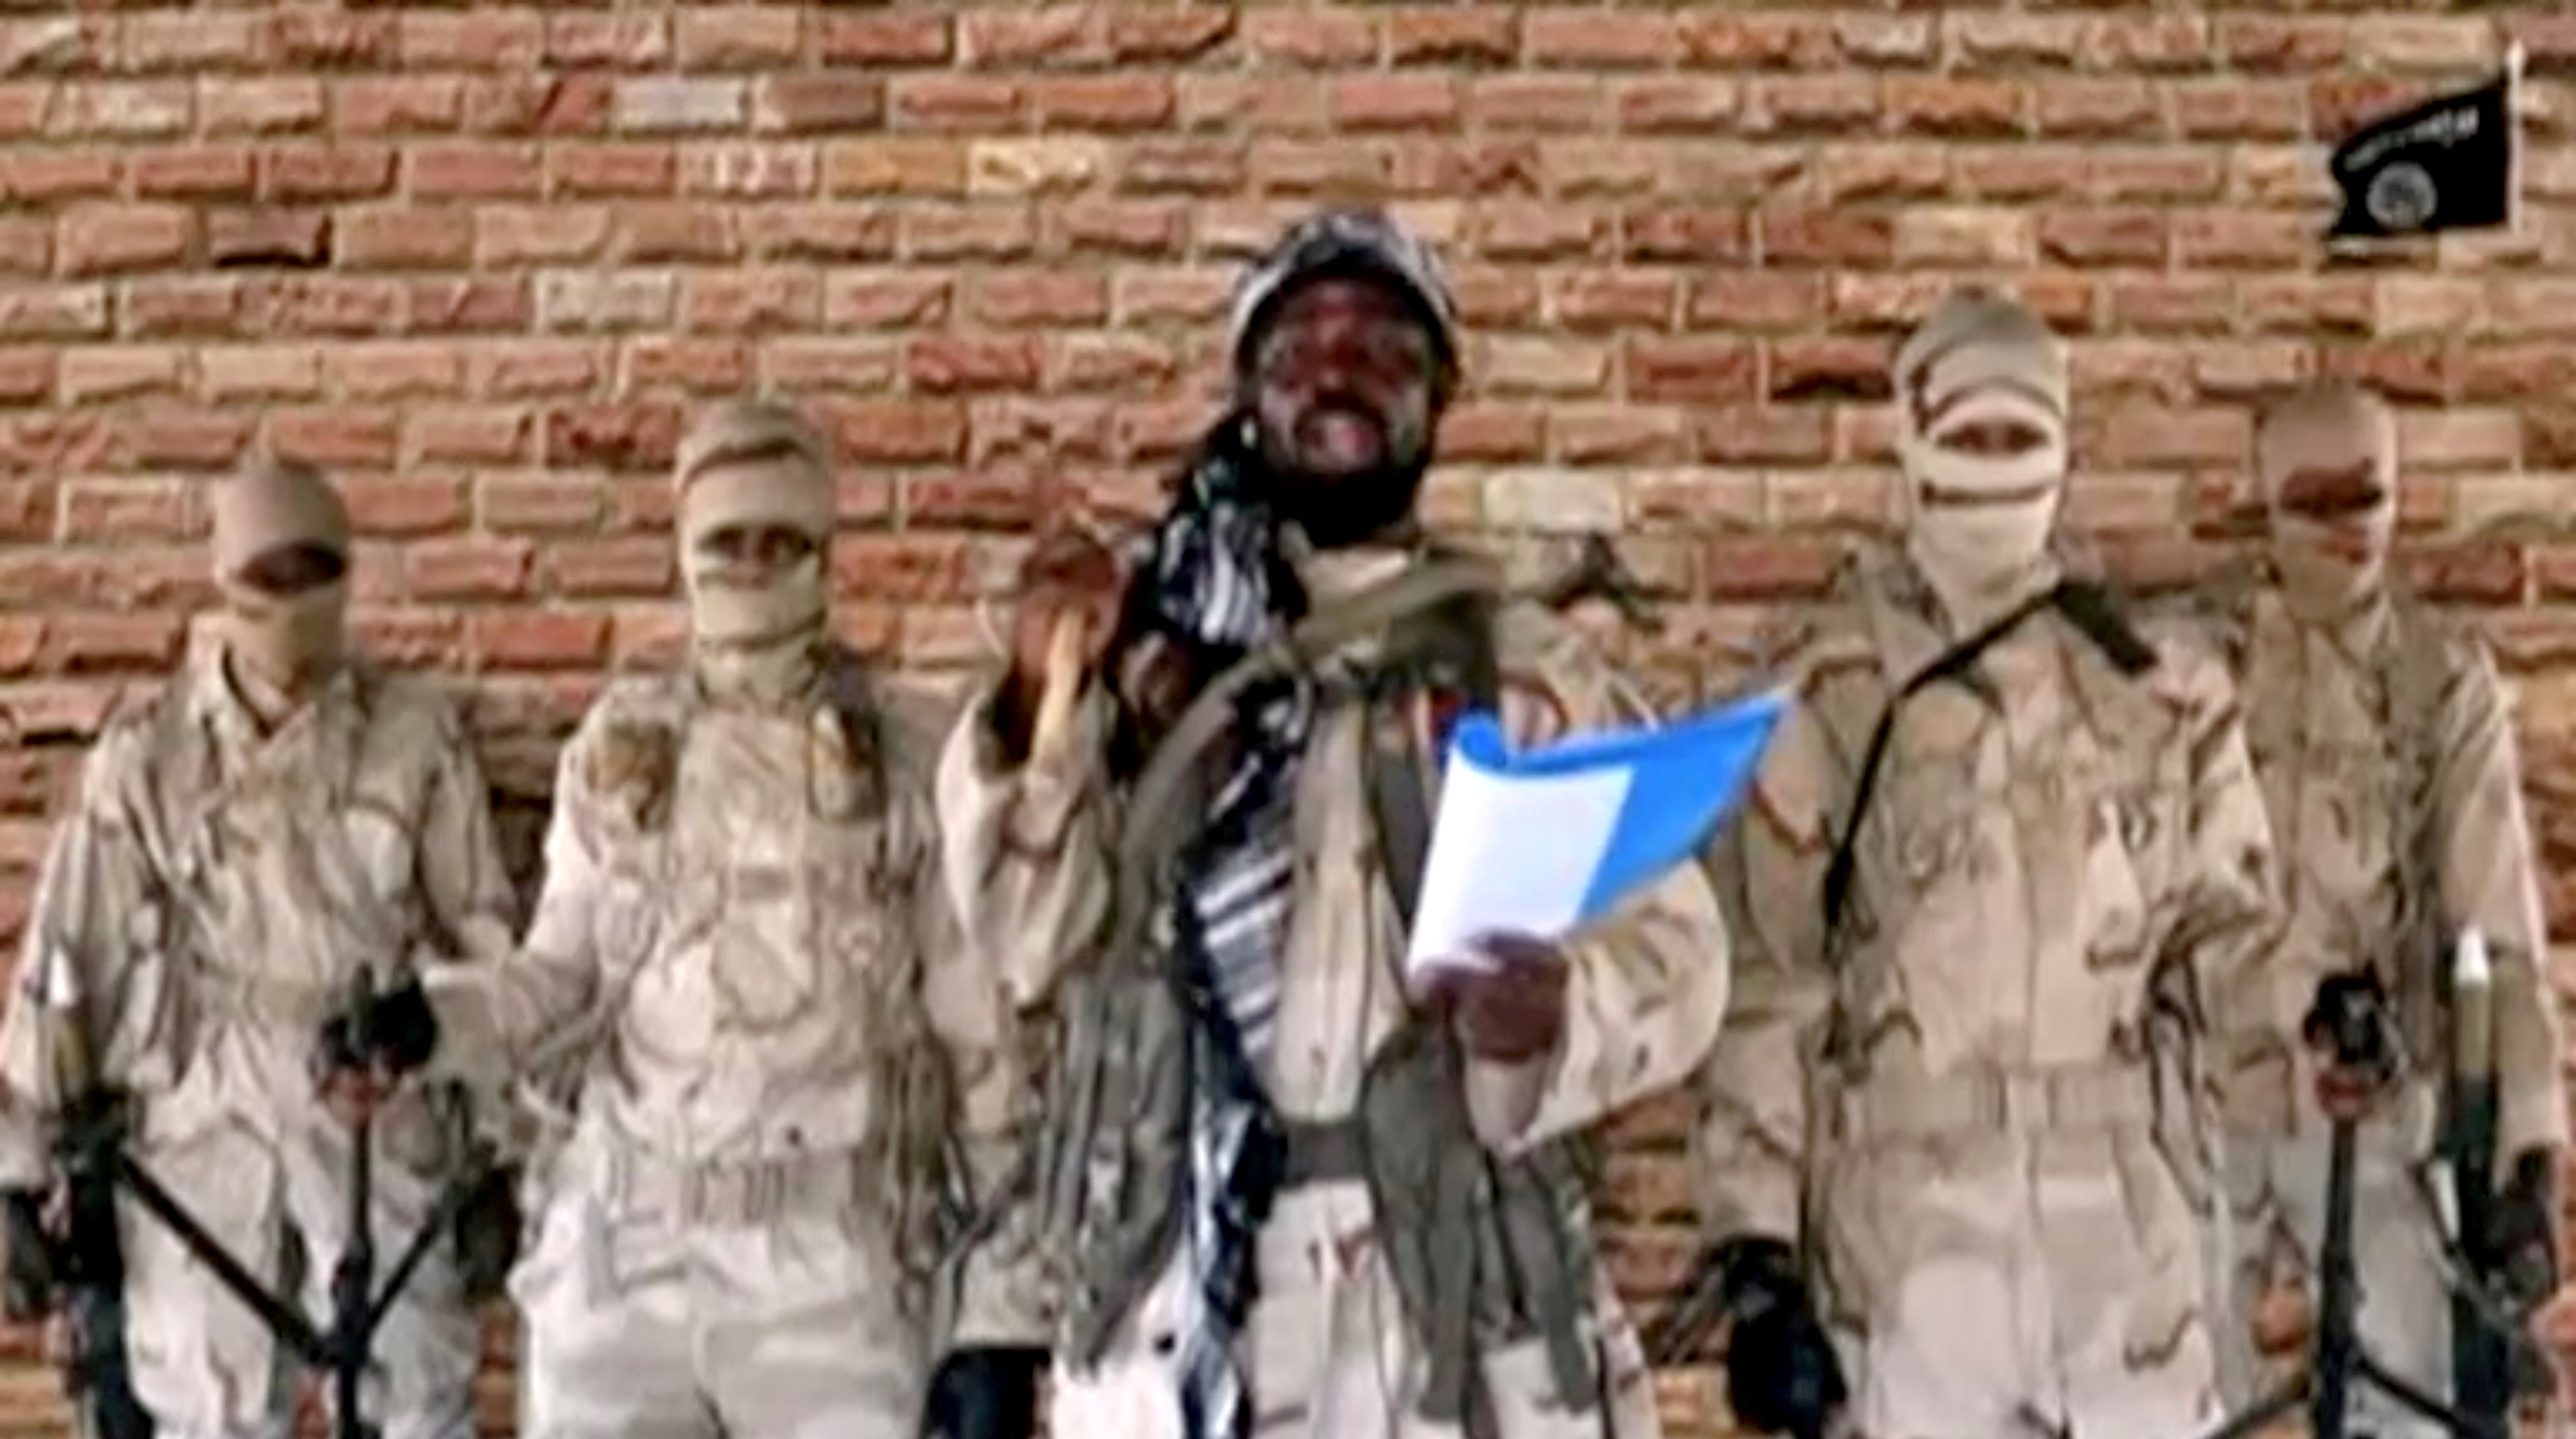 Boko Haram leader Abubakar Shekau speaks in front of guards in an unknown location in Nigeria in this still image taken from an undated video obtained on January 15, 2018. Boko Haram Handout/Sahara Reporters via REUTERS